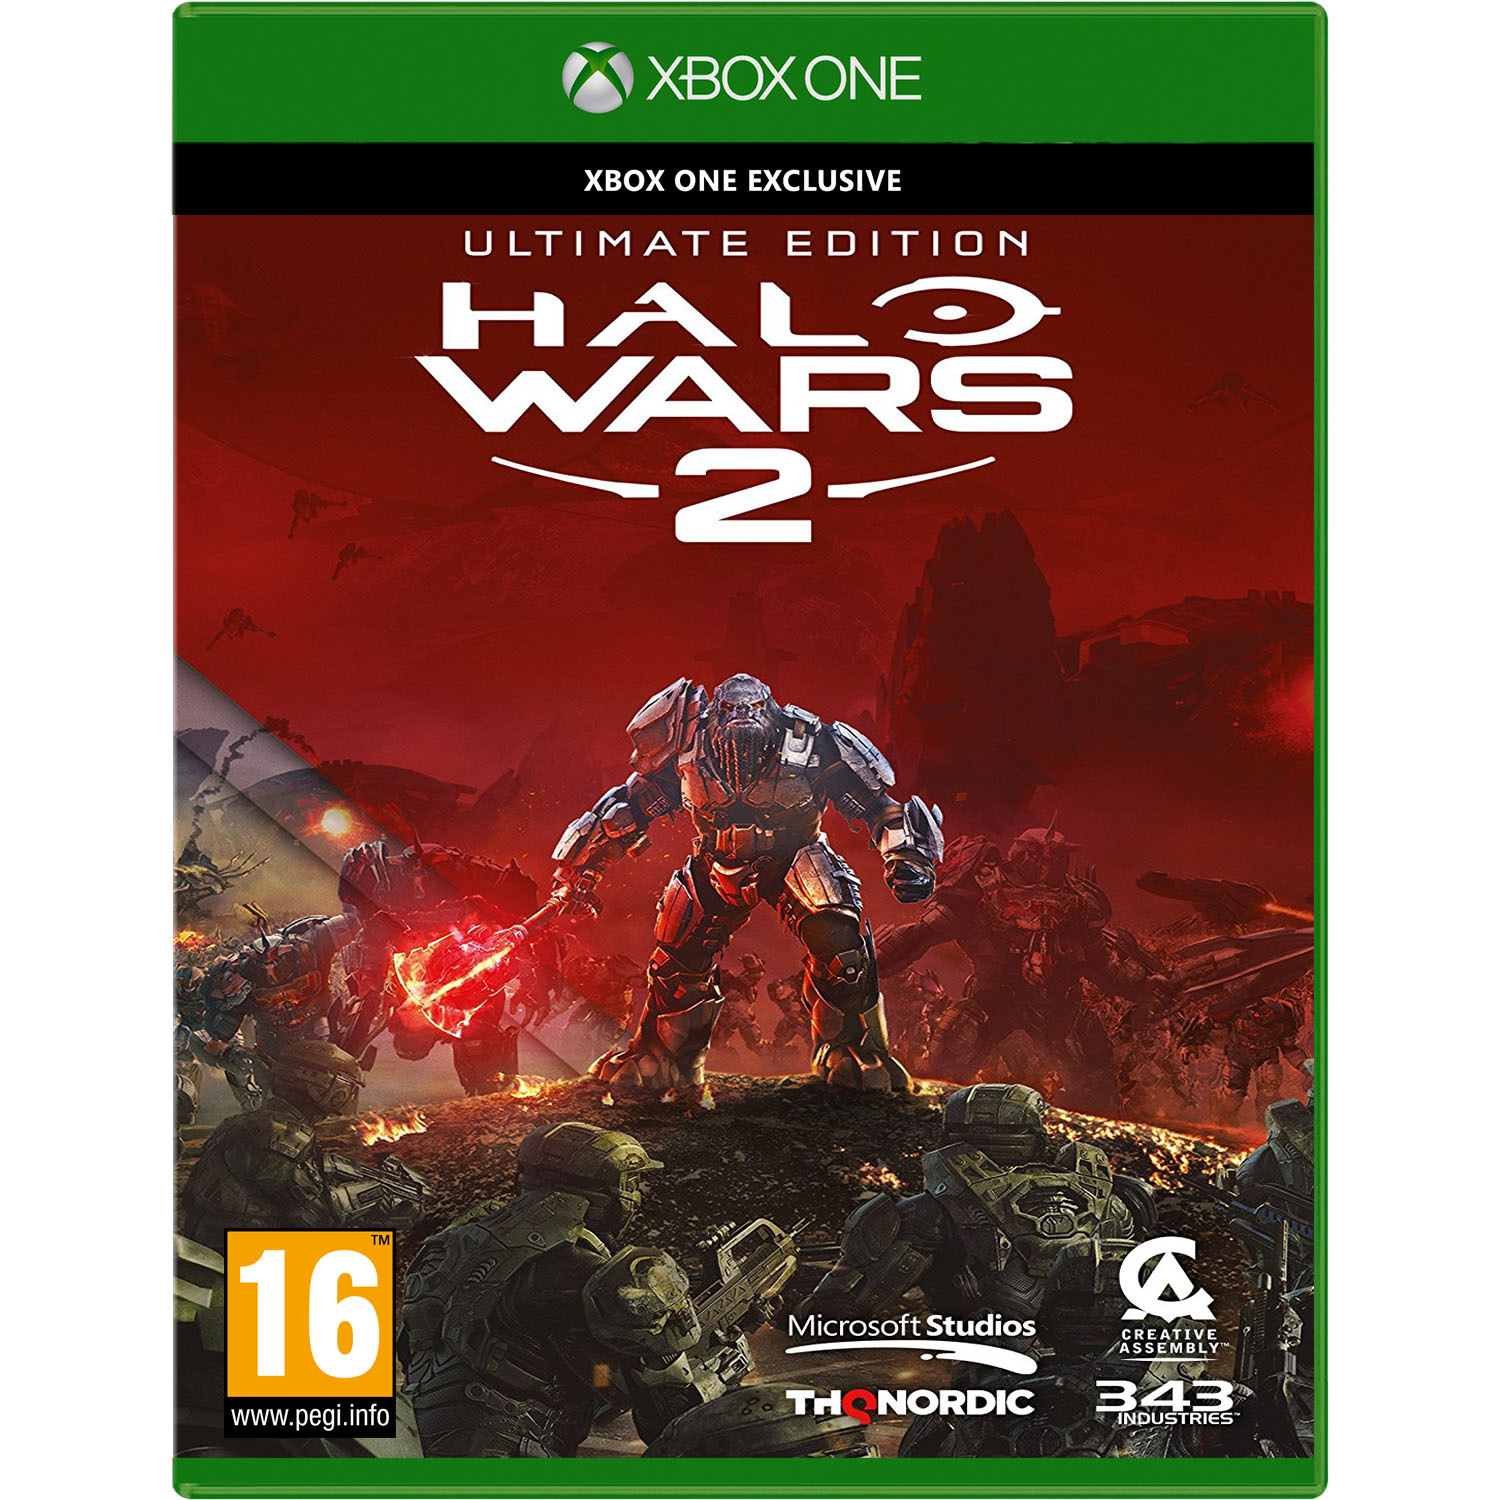 Игра Halo Wars 2 Ultimate Edition (Xbox One) цена и фото